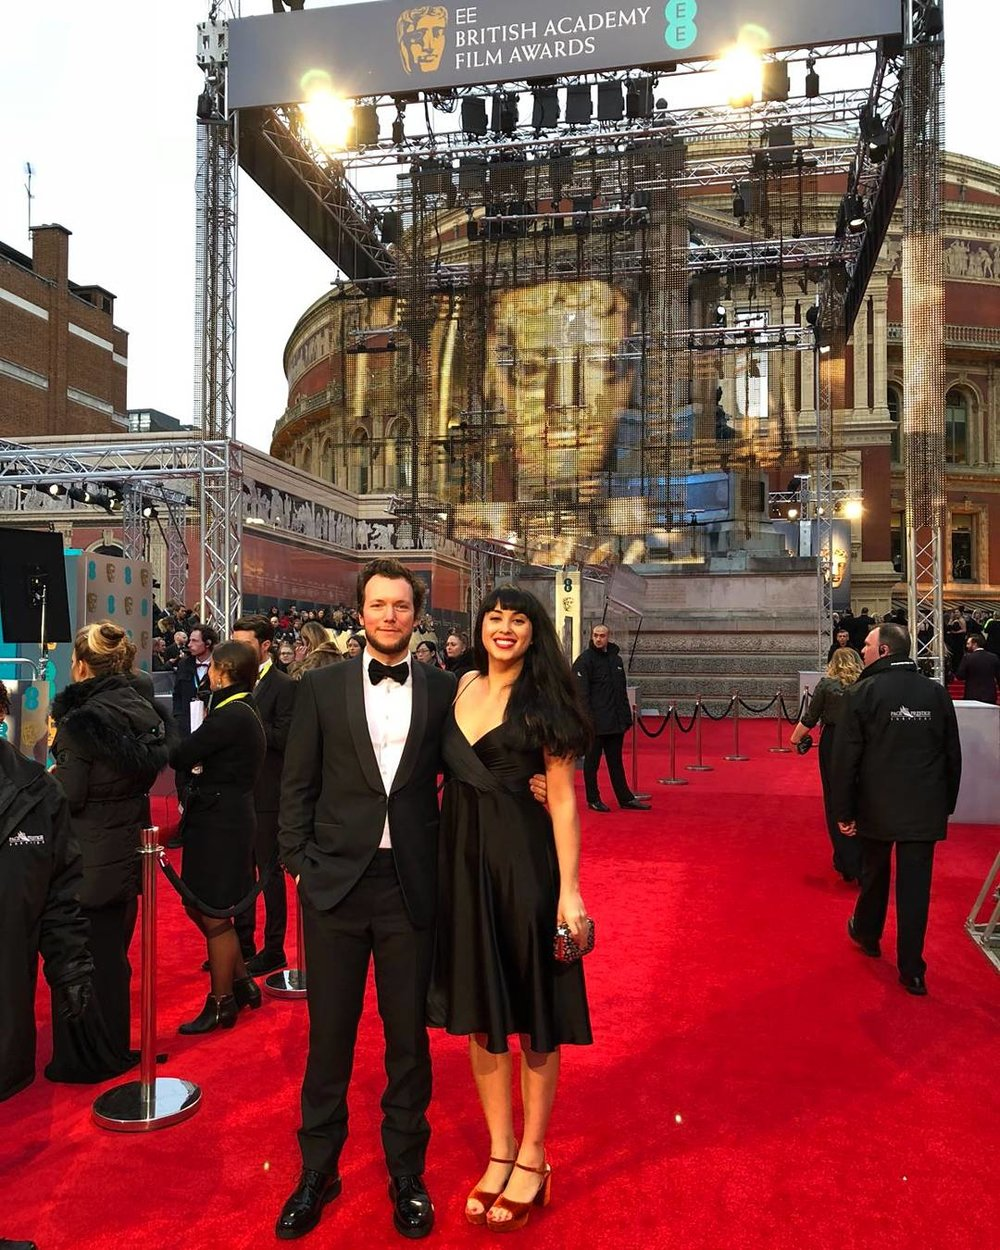 Back to black, Melissa Hemsley glowing as she attended the BAFTA Awards in the Carly dress -